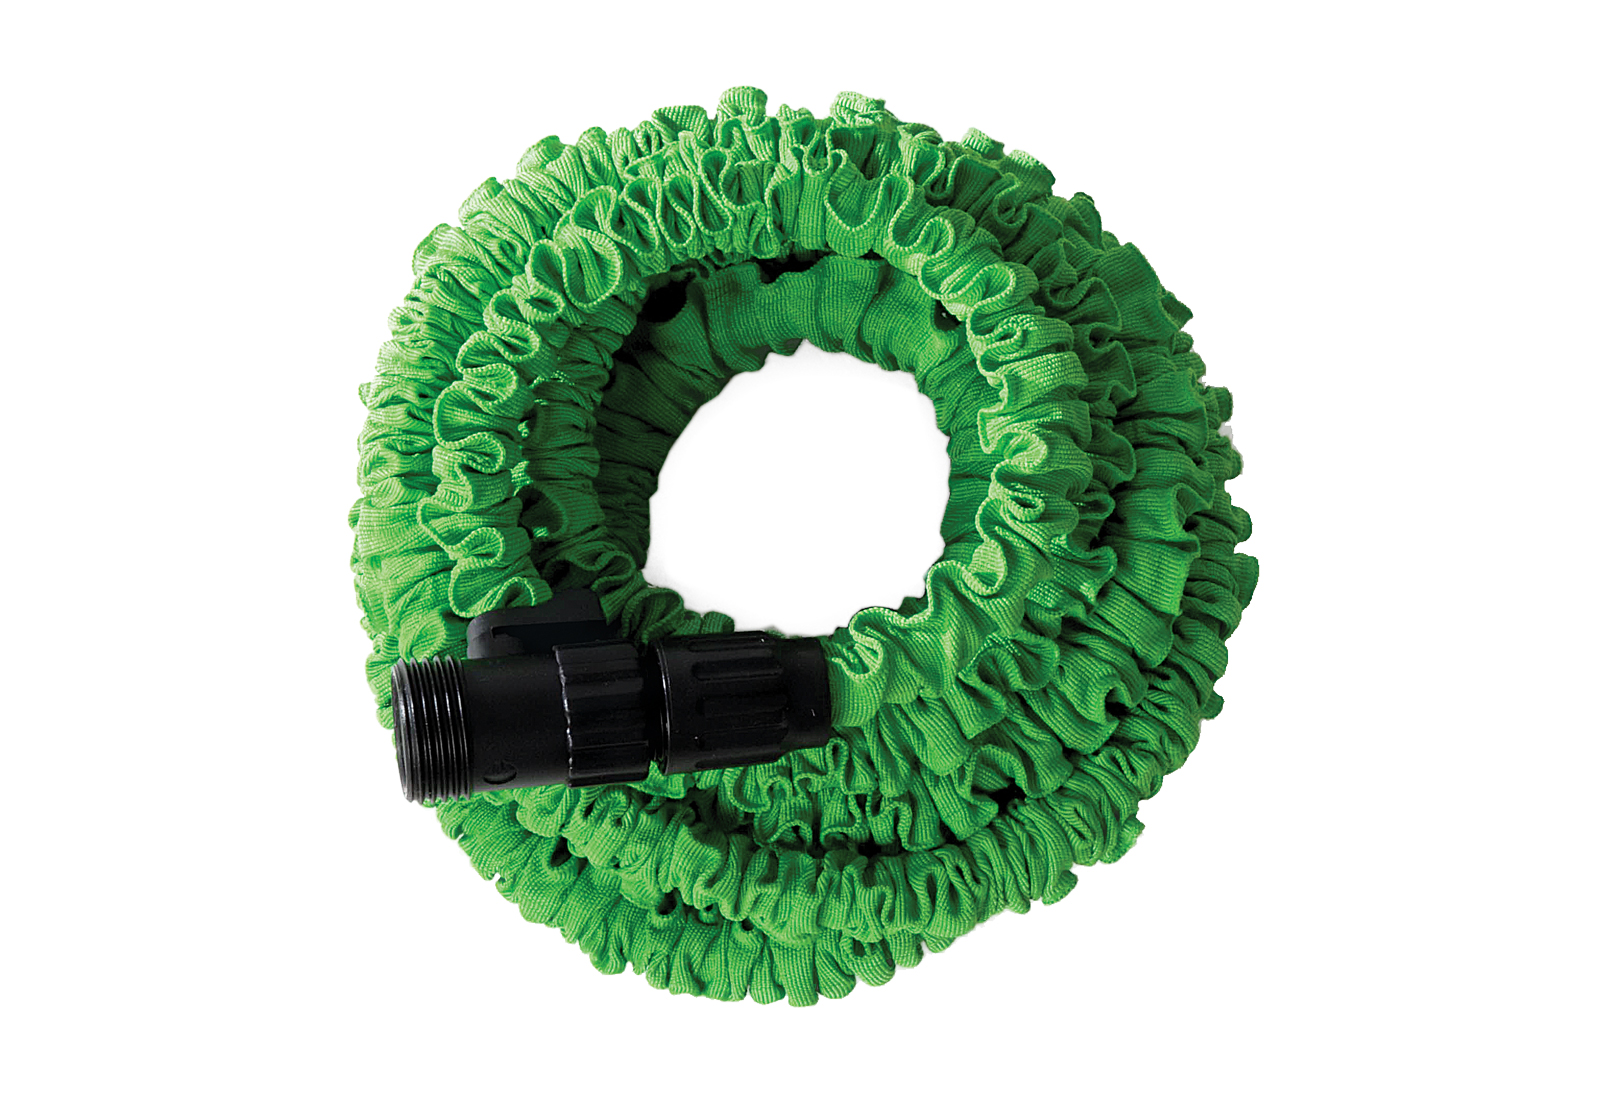 Flex-Able Hose Product Image